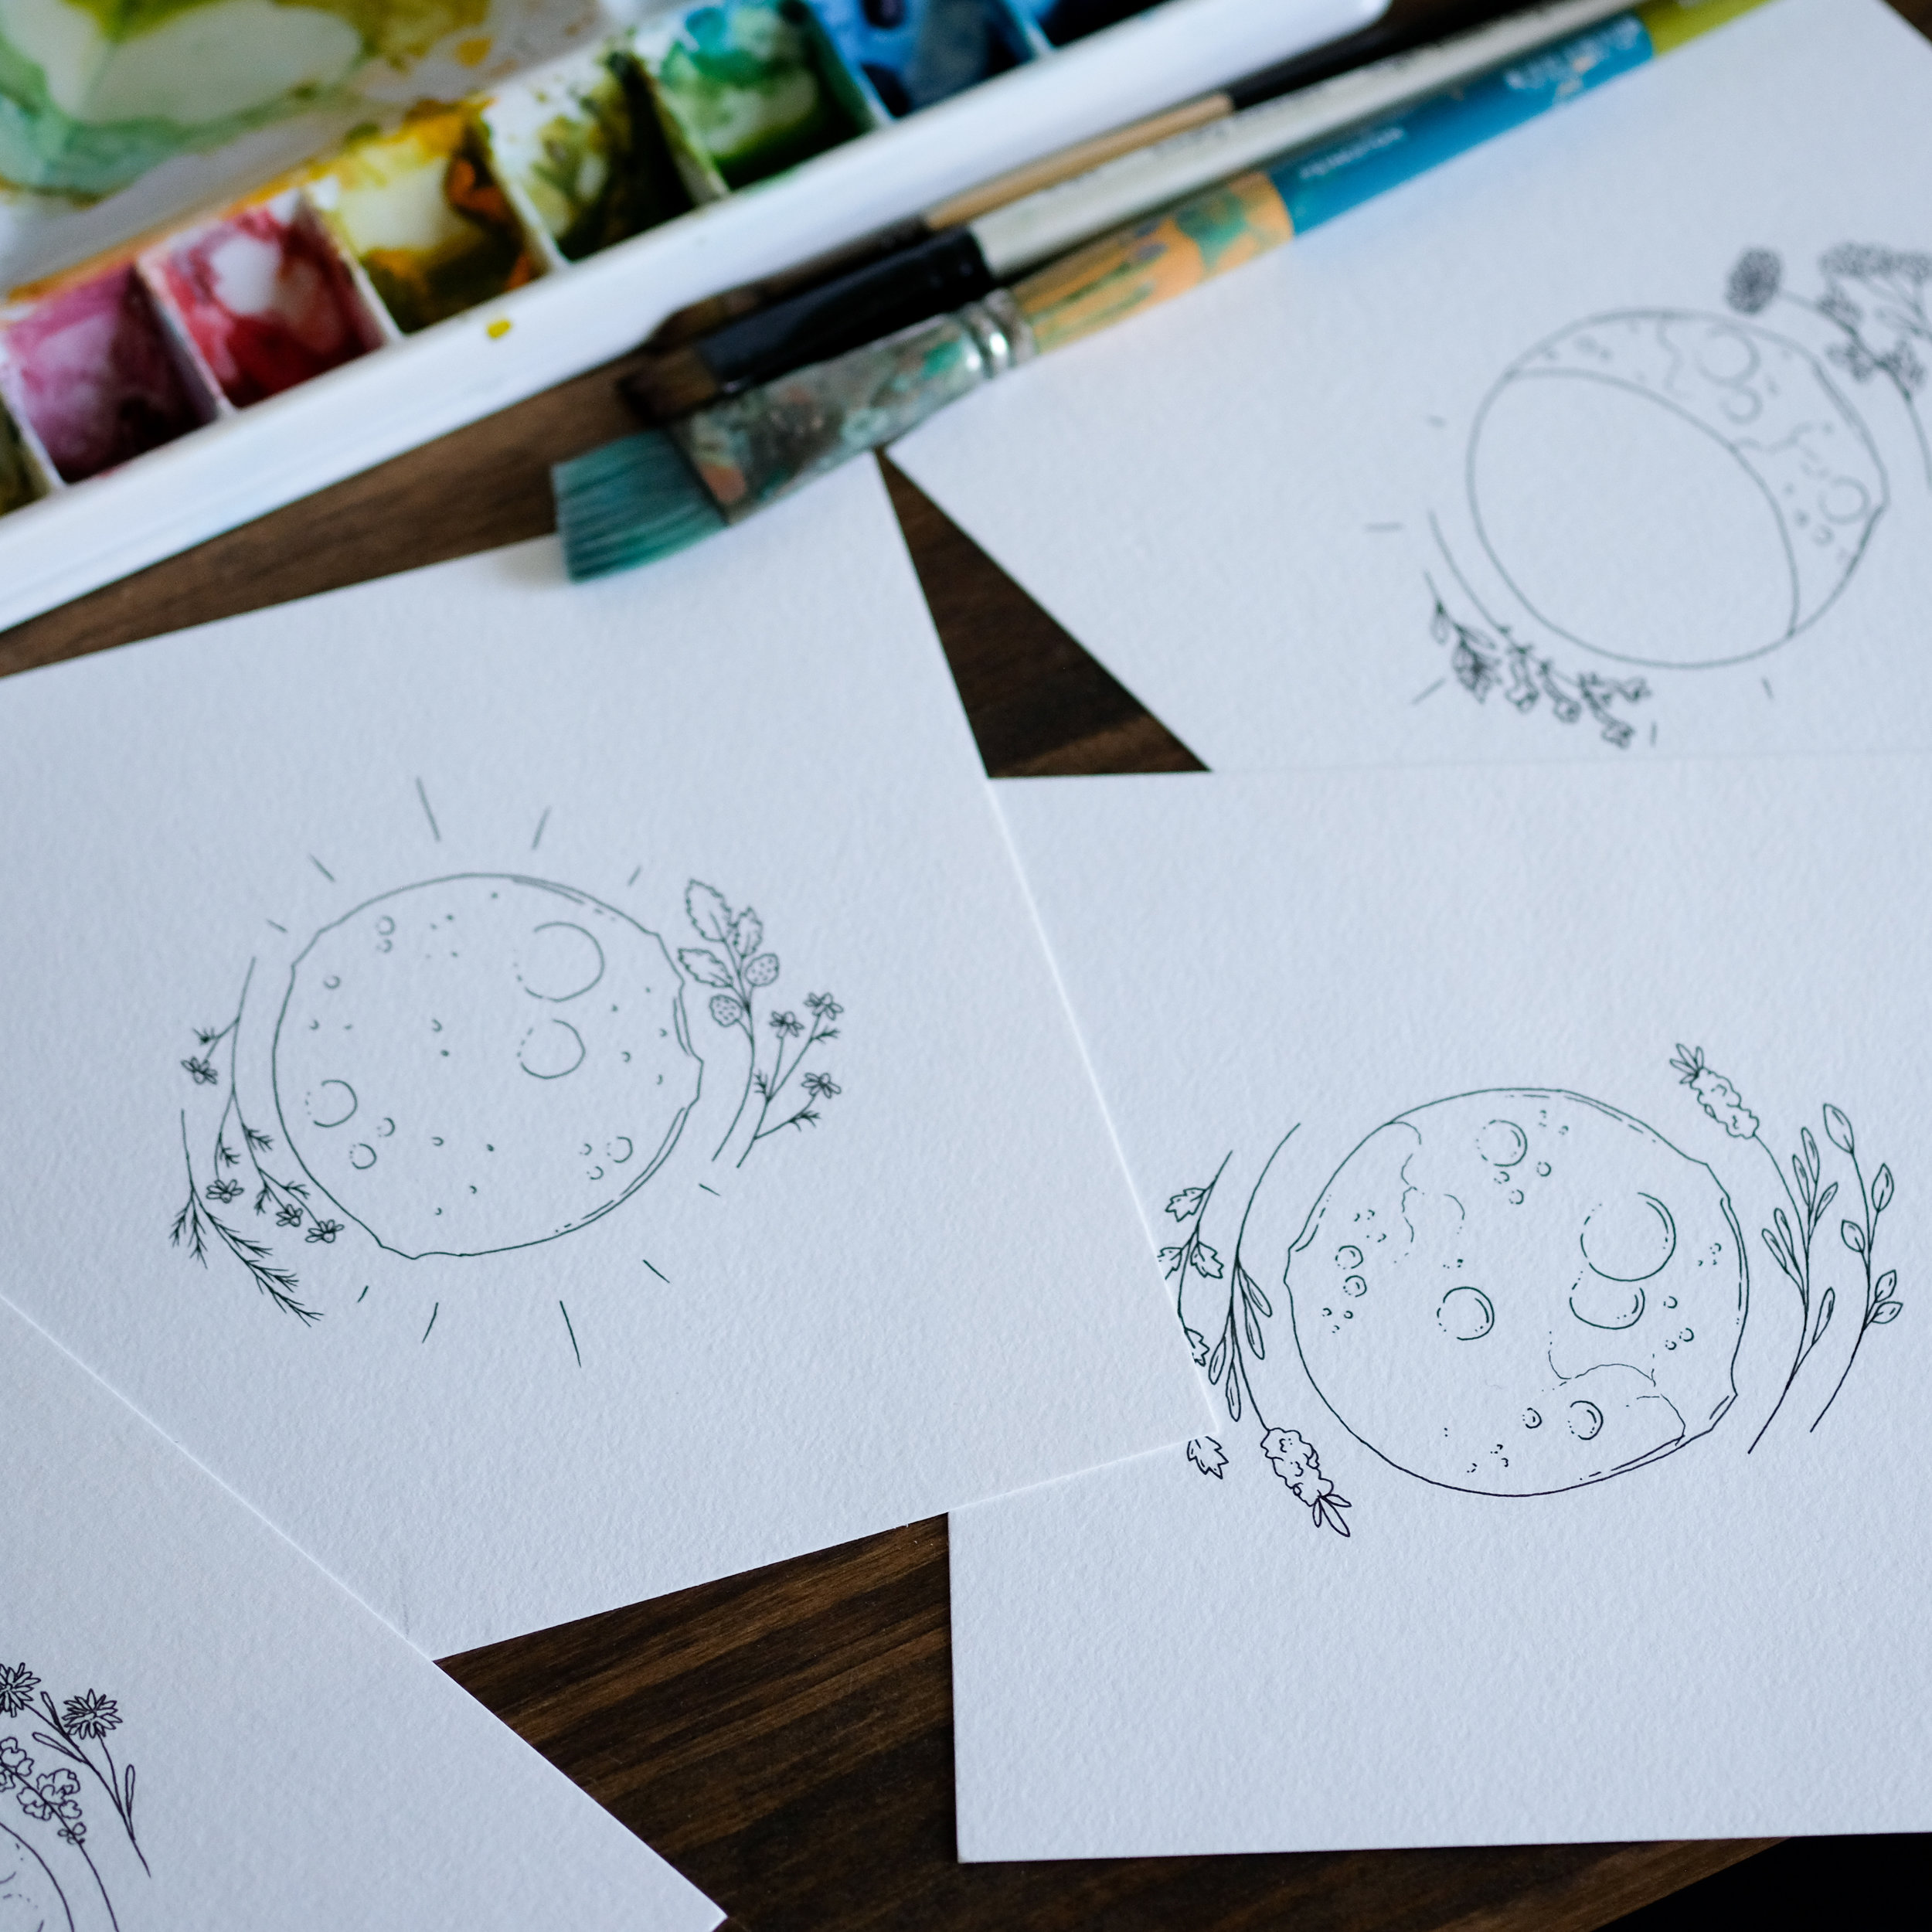 The Lunar Tea Co. illustrations.